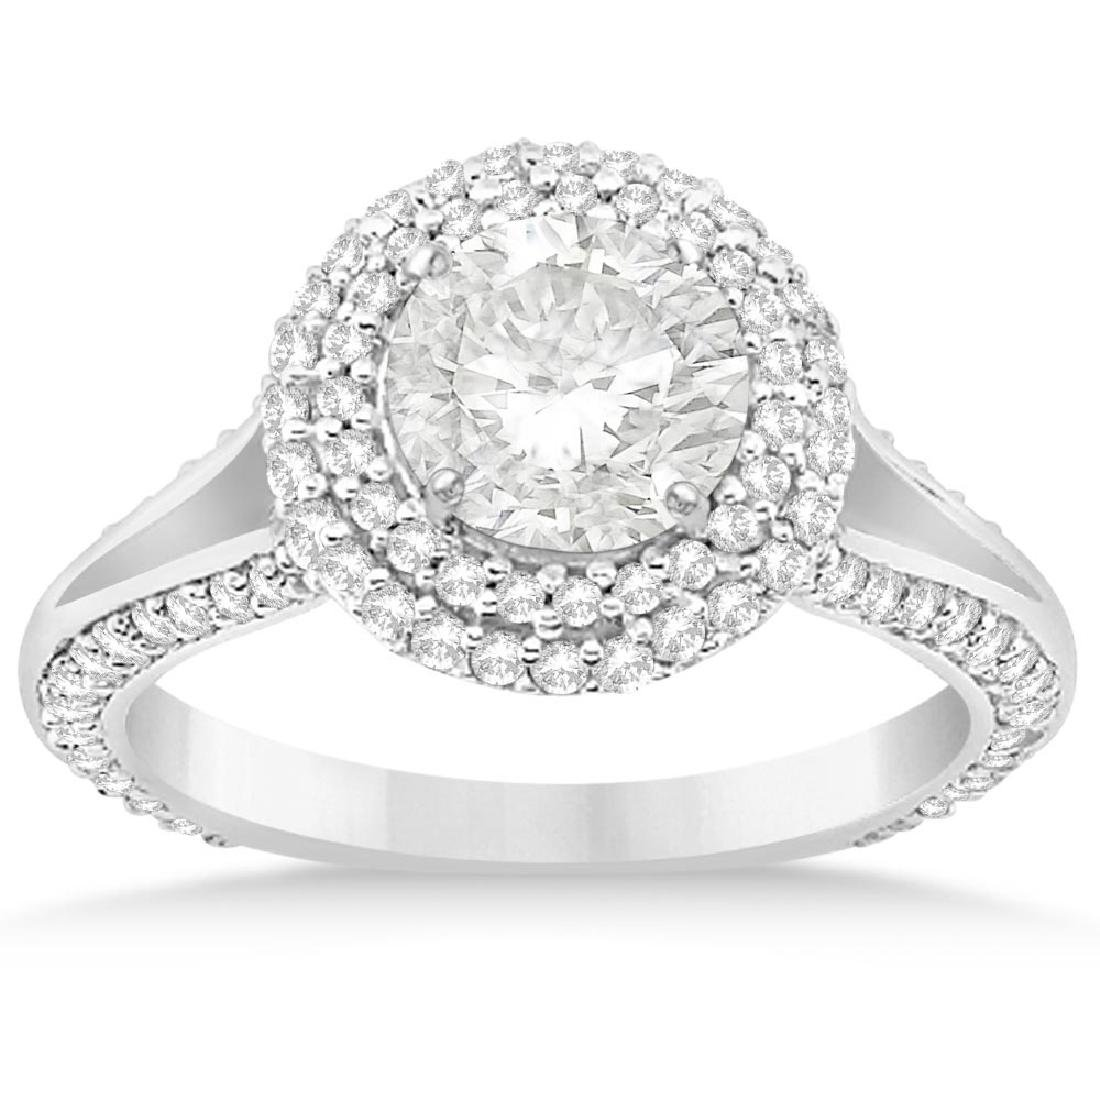 Double Halo Diamond Engagement Ring Setting 14k White G